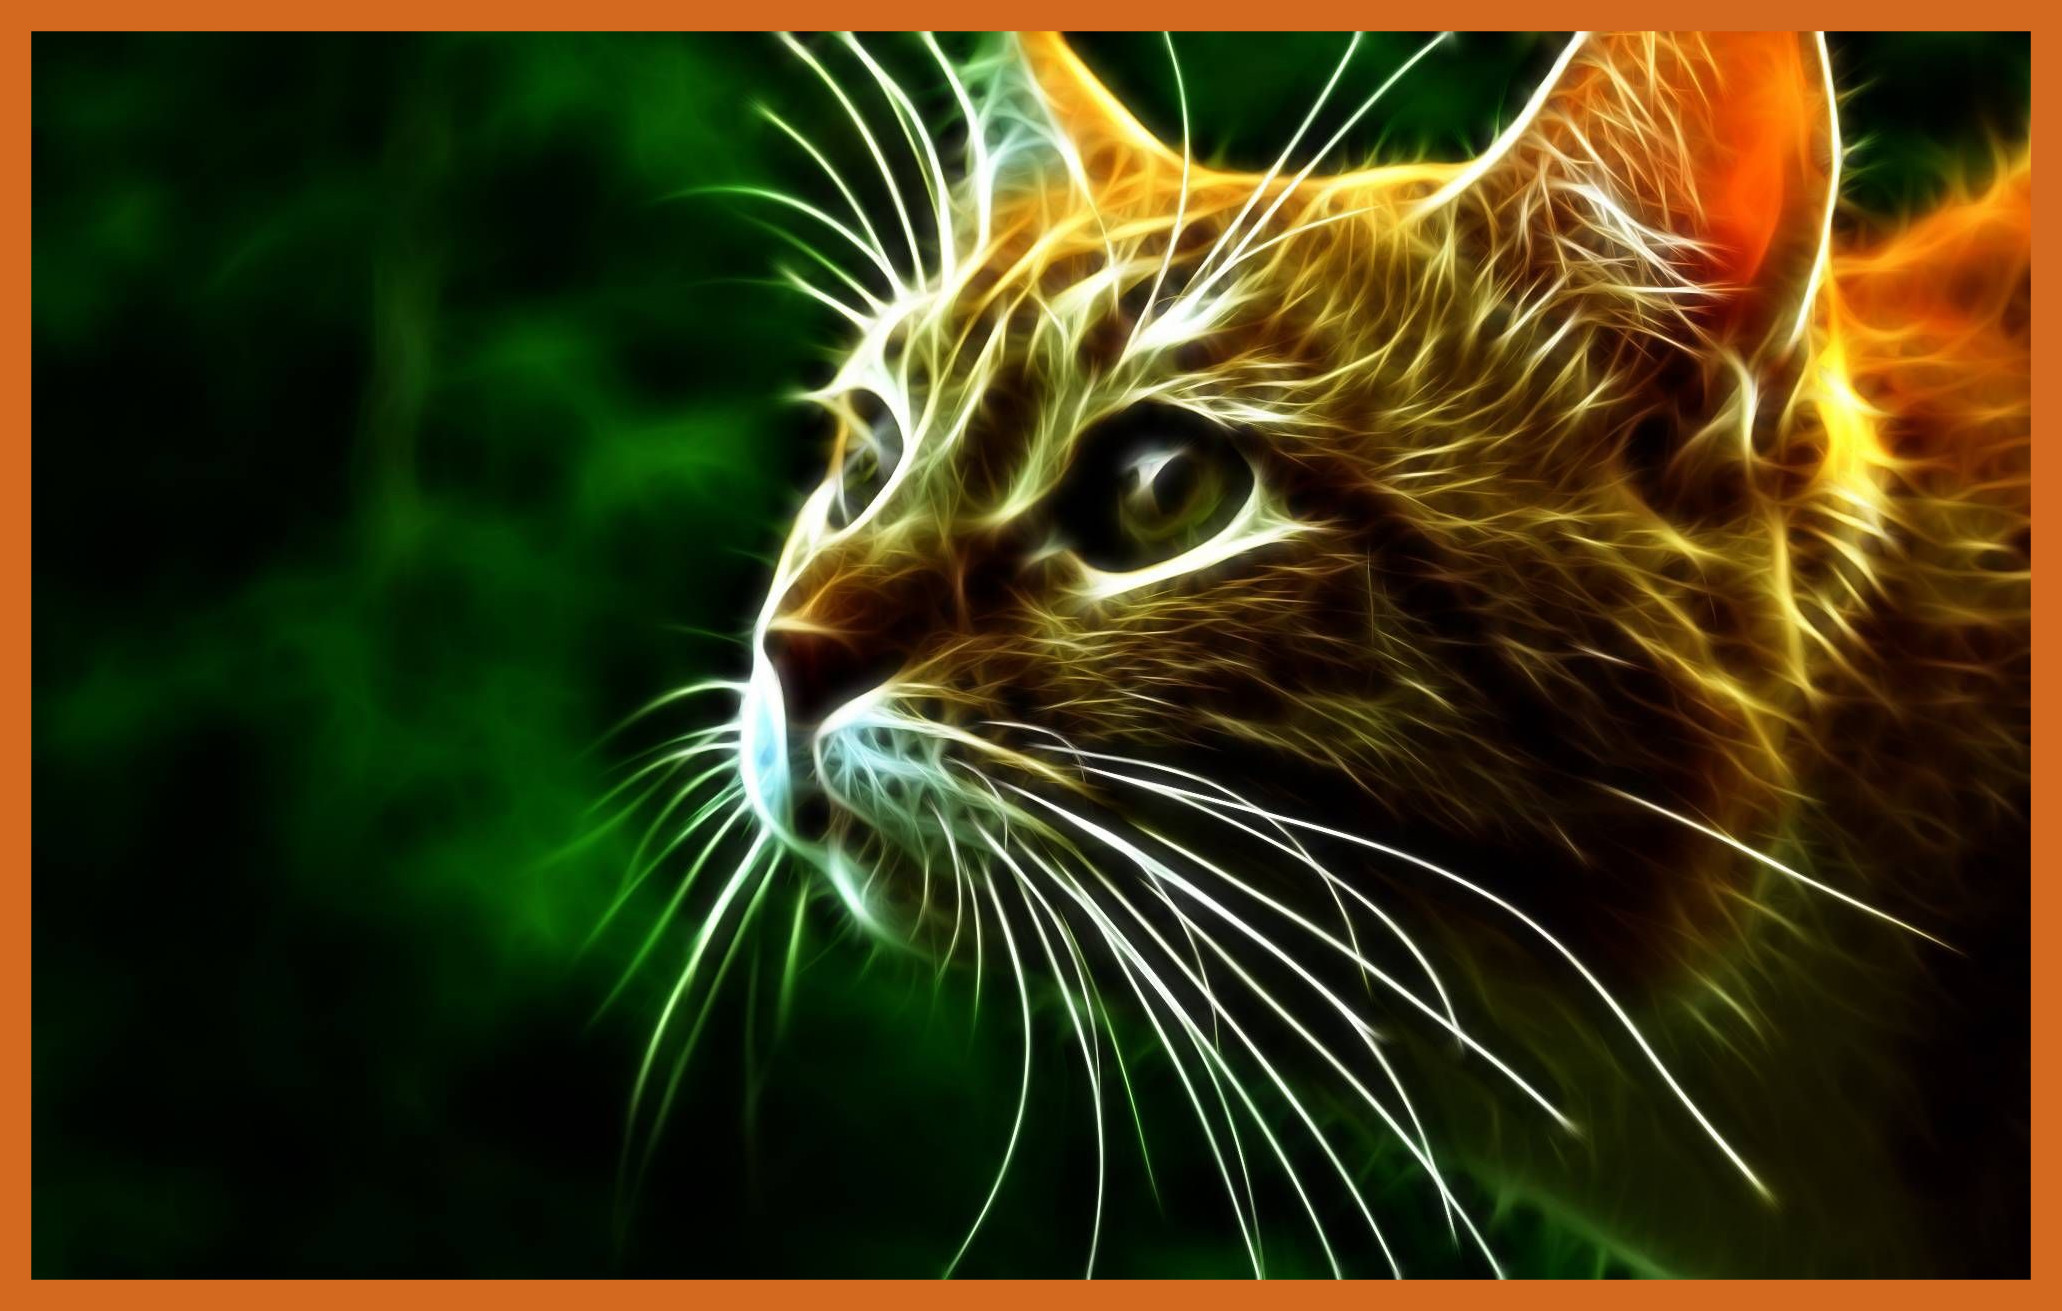 Res: 2062x1311, Cute Cat Wallpaper Cute Cat Wallpaper 3d Stunning Fire Cat Wallpaper Comes  With Magical Picture For